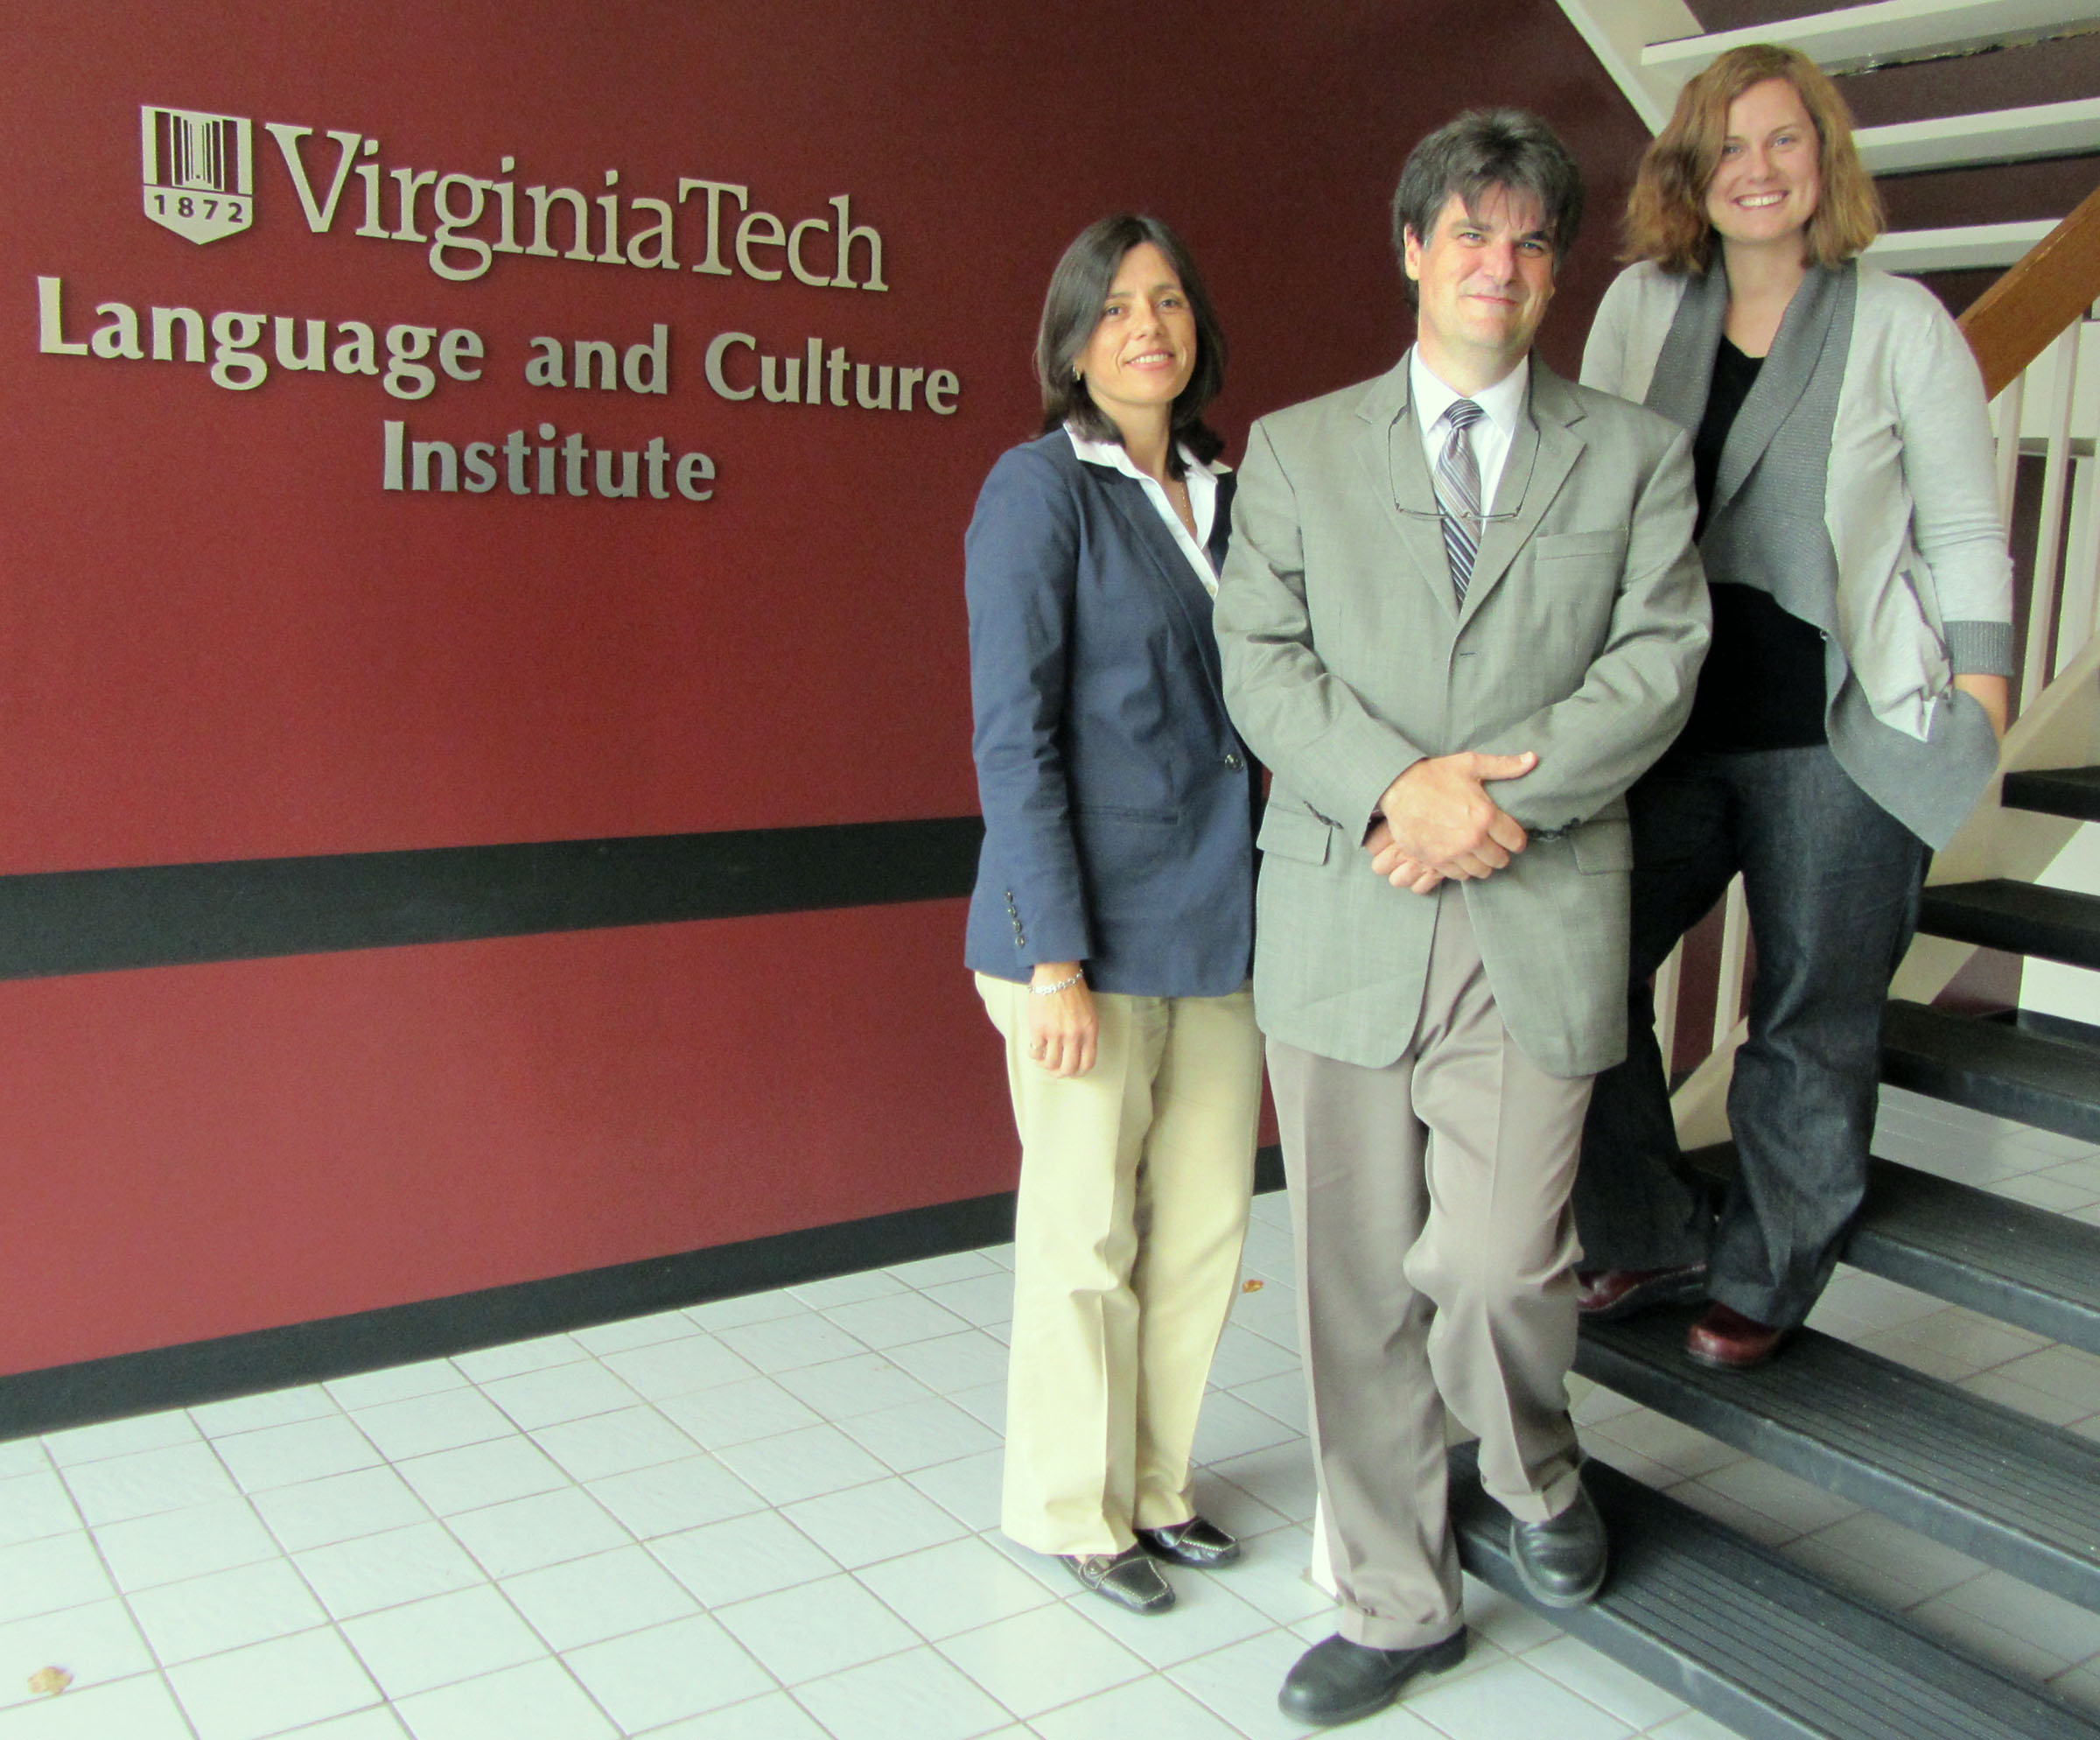 Staff members Elsie Paredes, Don Back and Amanda Johnson at the Virginia Tech Language and Culture Institute